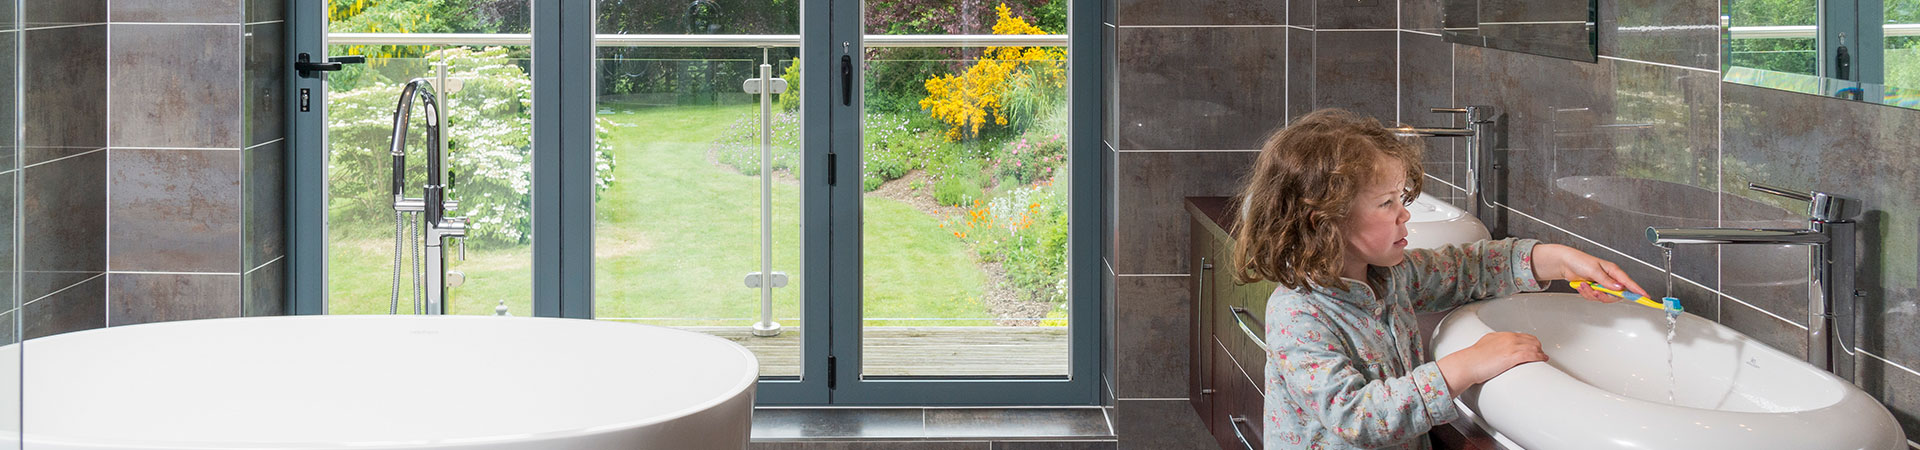 uPVC Bi-Fold Doors Staffordshire and Stoke-on-Trent